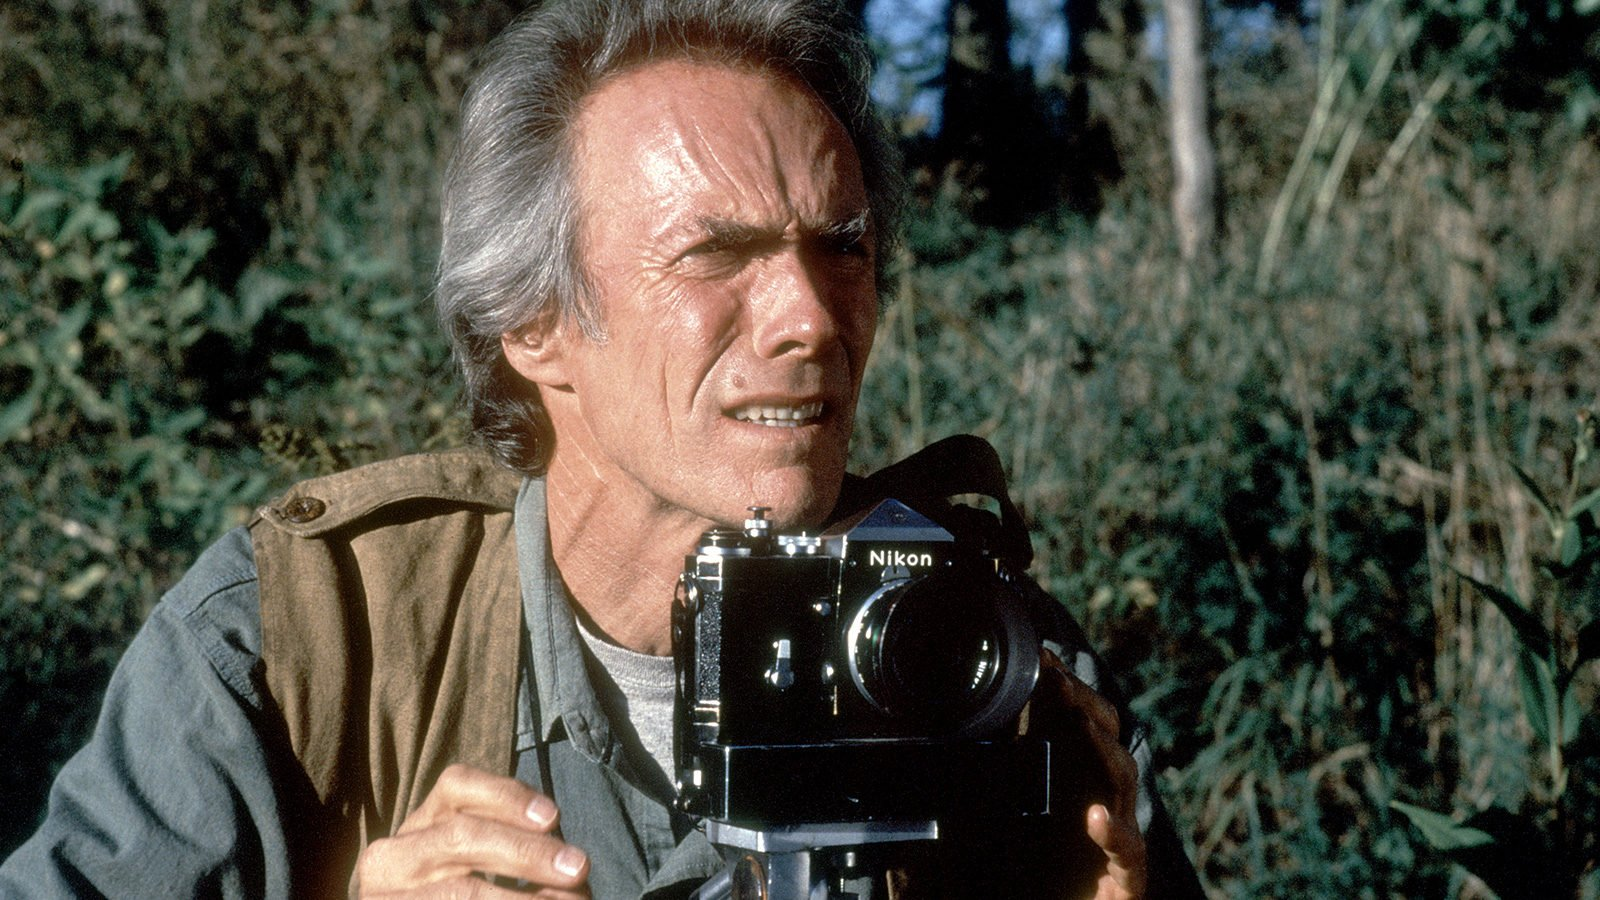 g30 20 Things You Didn't Know About Clint Eastwood